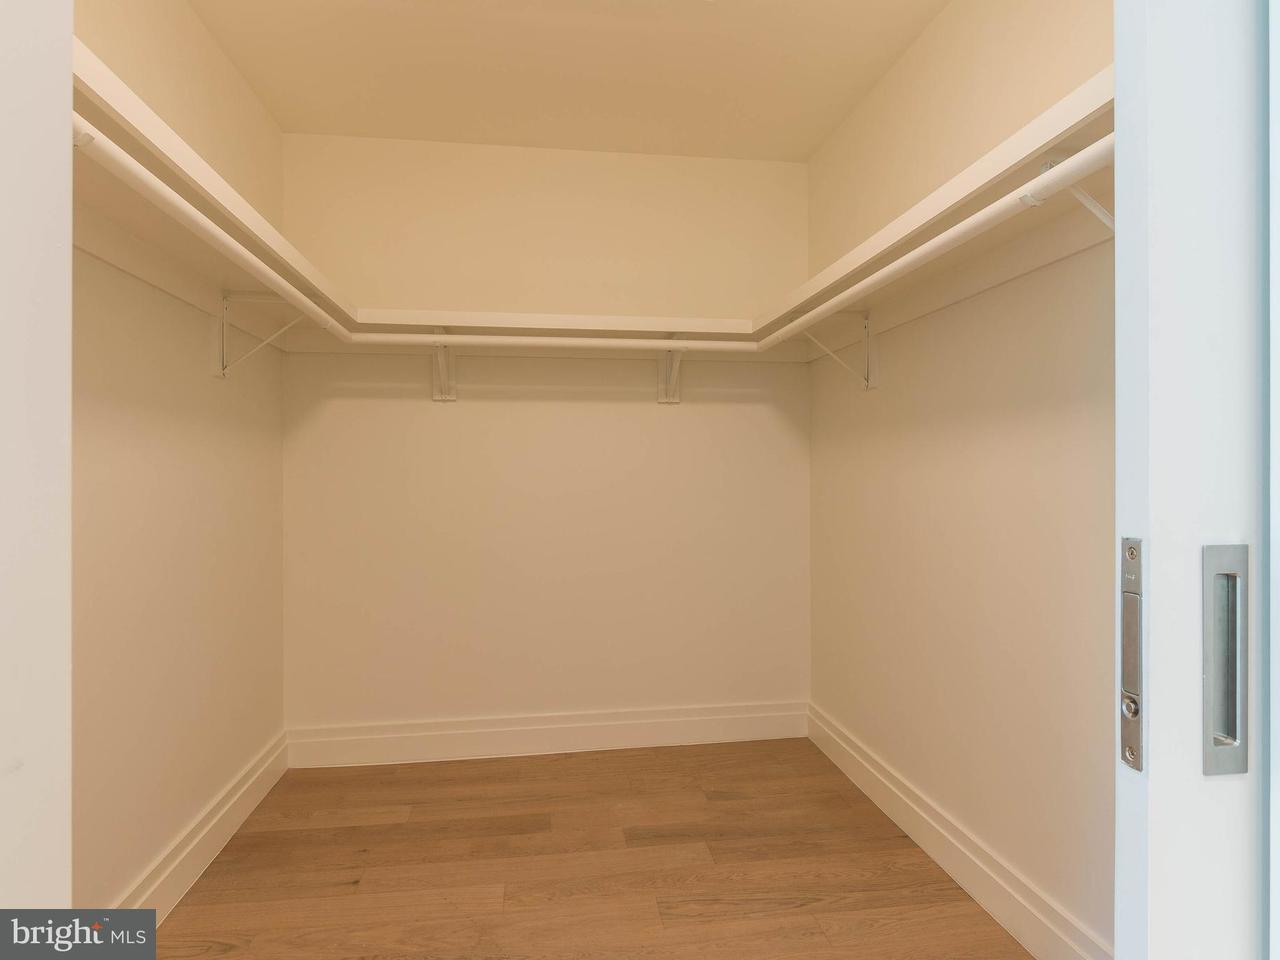 Additional photo for property listing at 2501 M St Nw #308 2501 M St Nw #308 Washington, コロンビア特別区 20037 アメリカ合衆国